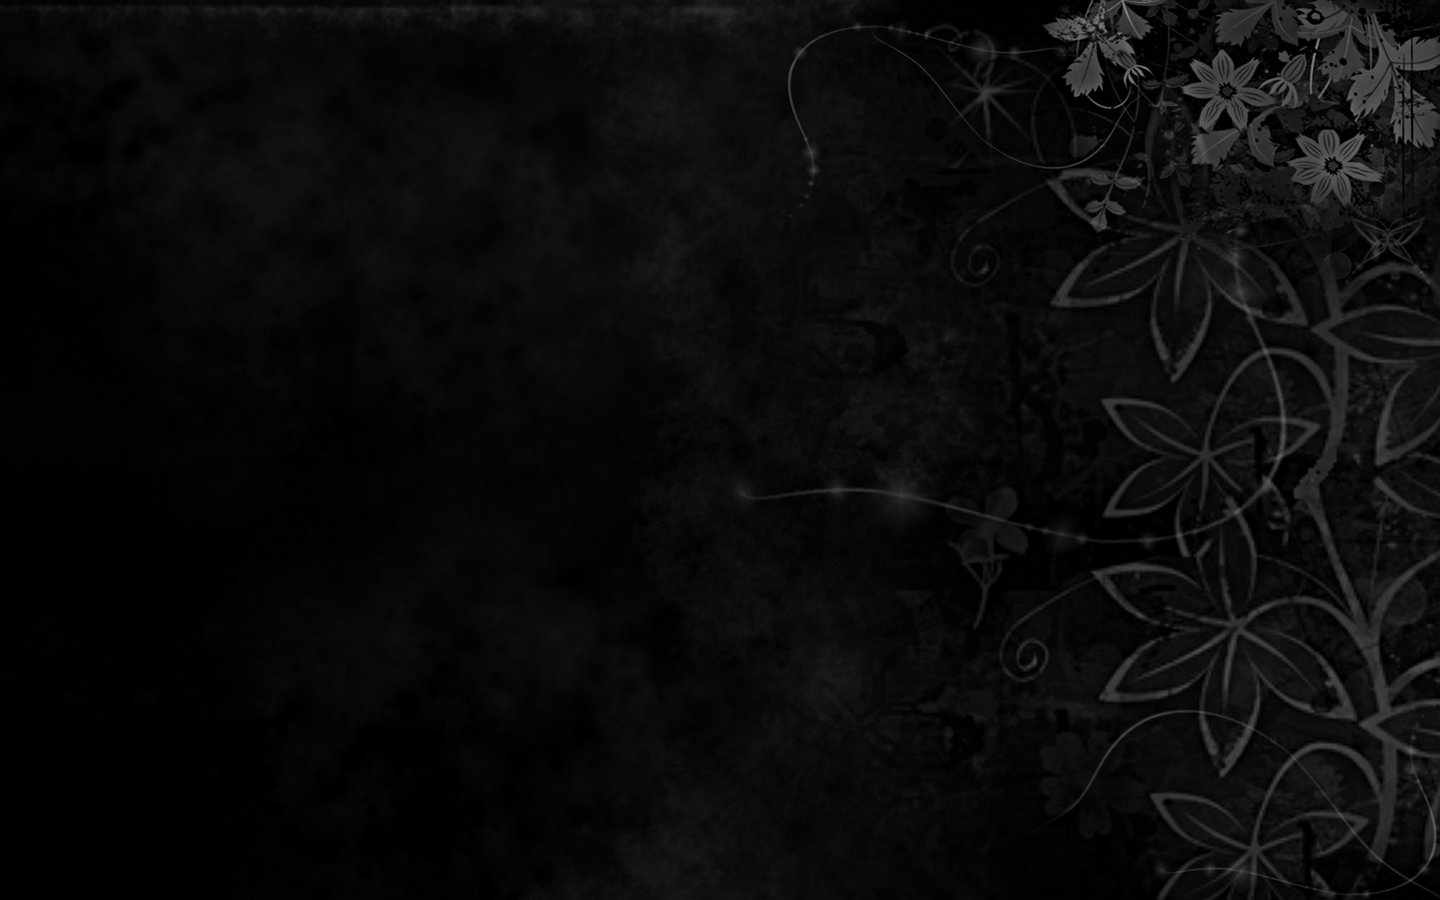 Black and White Desktop